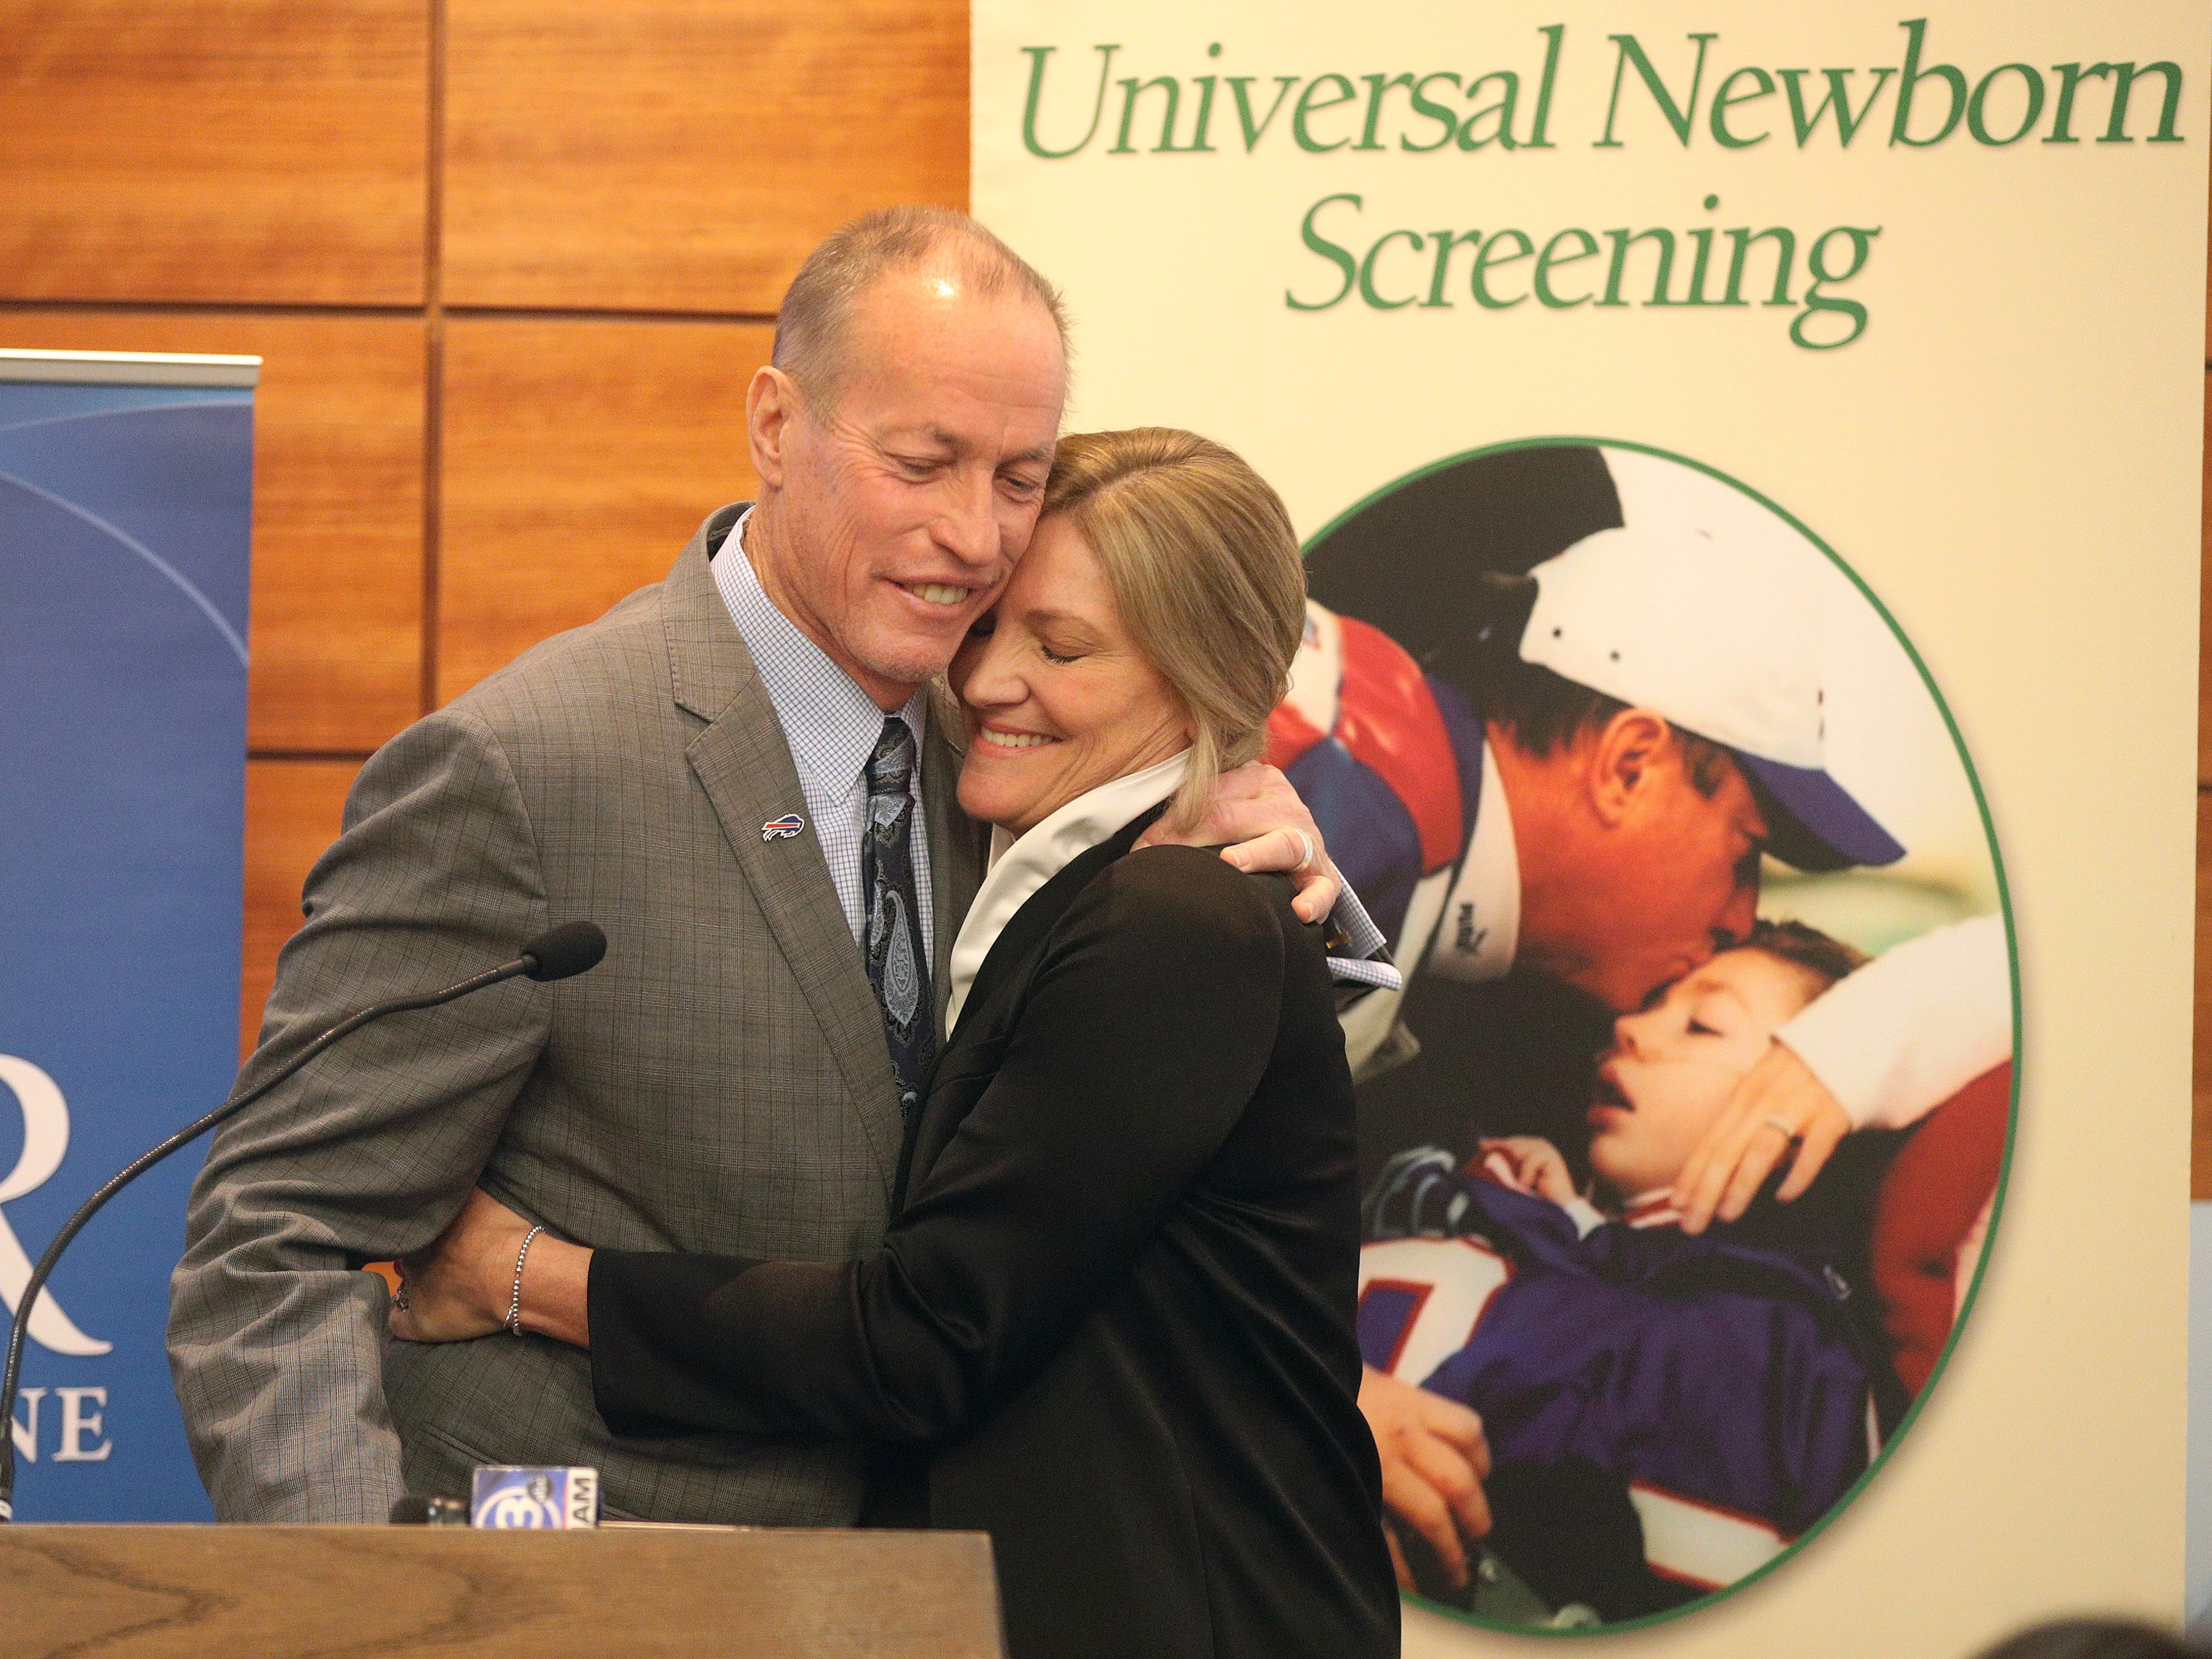 Buffalo Bills great Jim Kelly preps for what is hoped to be last surgery